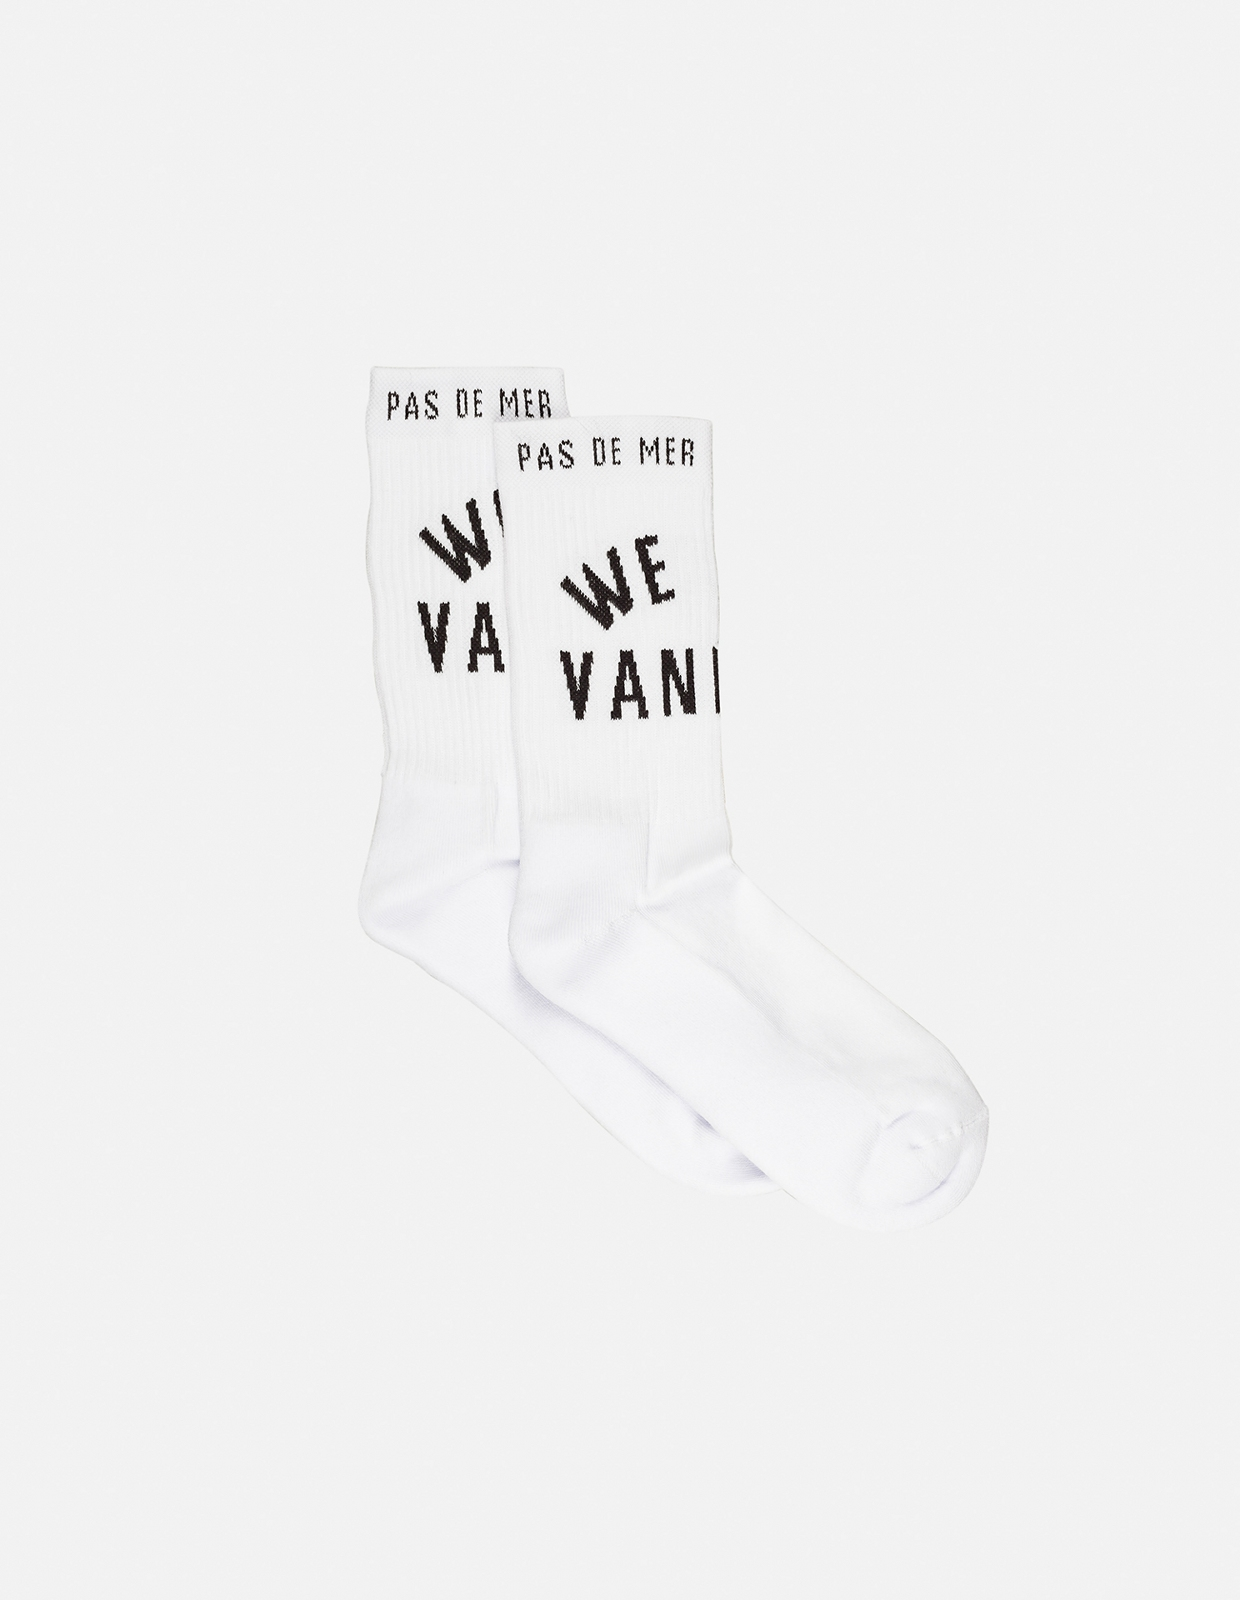 【PAS DE MER/パドゥメ】WE ARE VANDALS SOCKS ソックス / WHITE